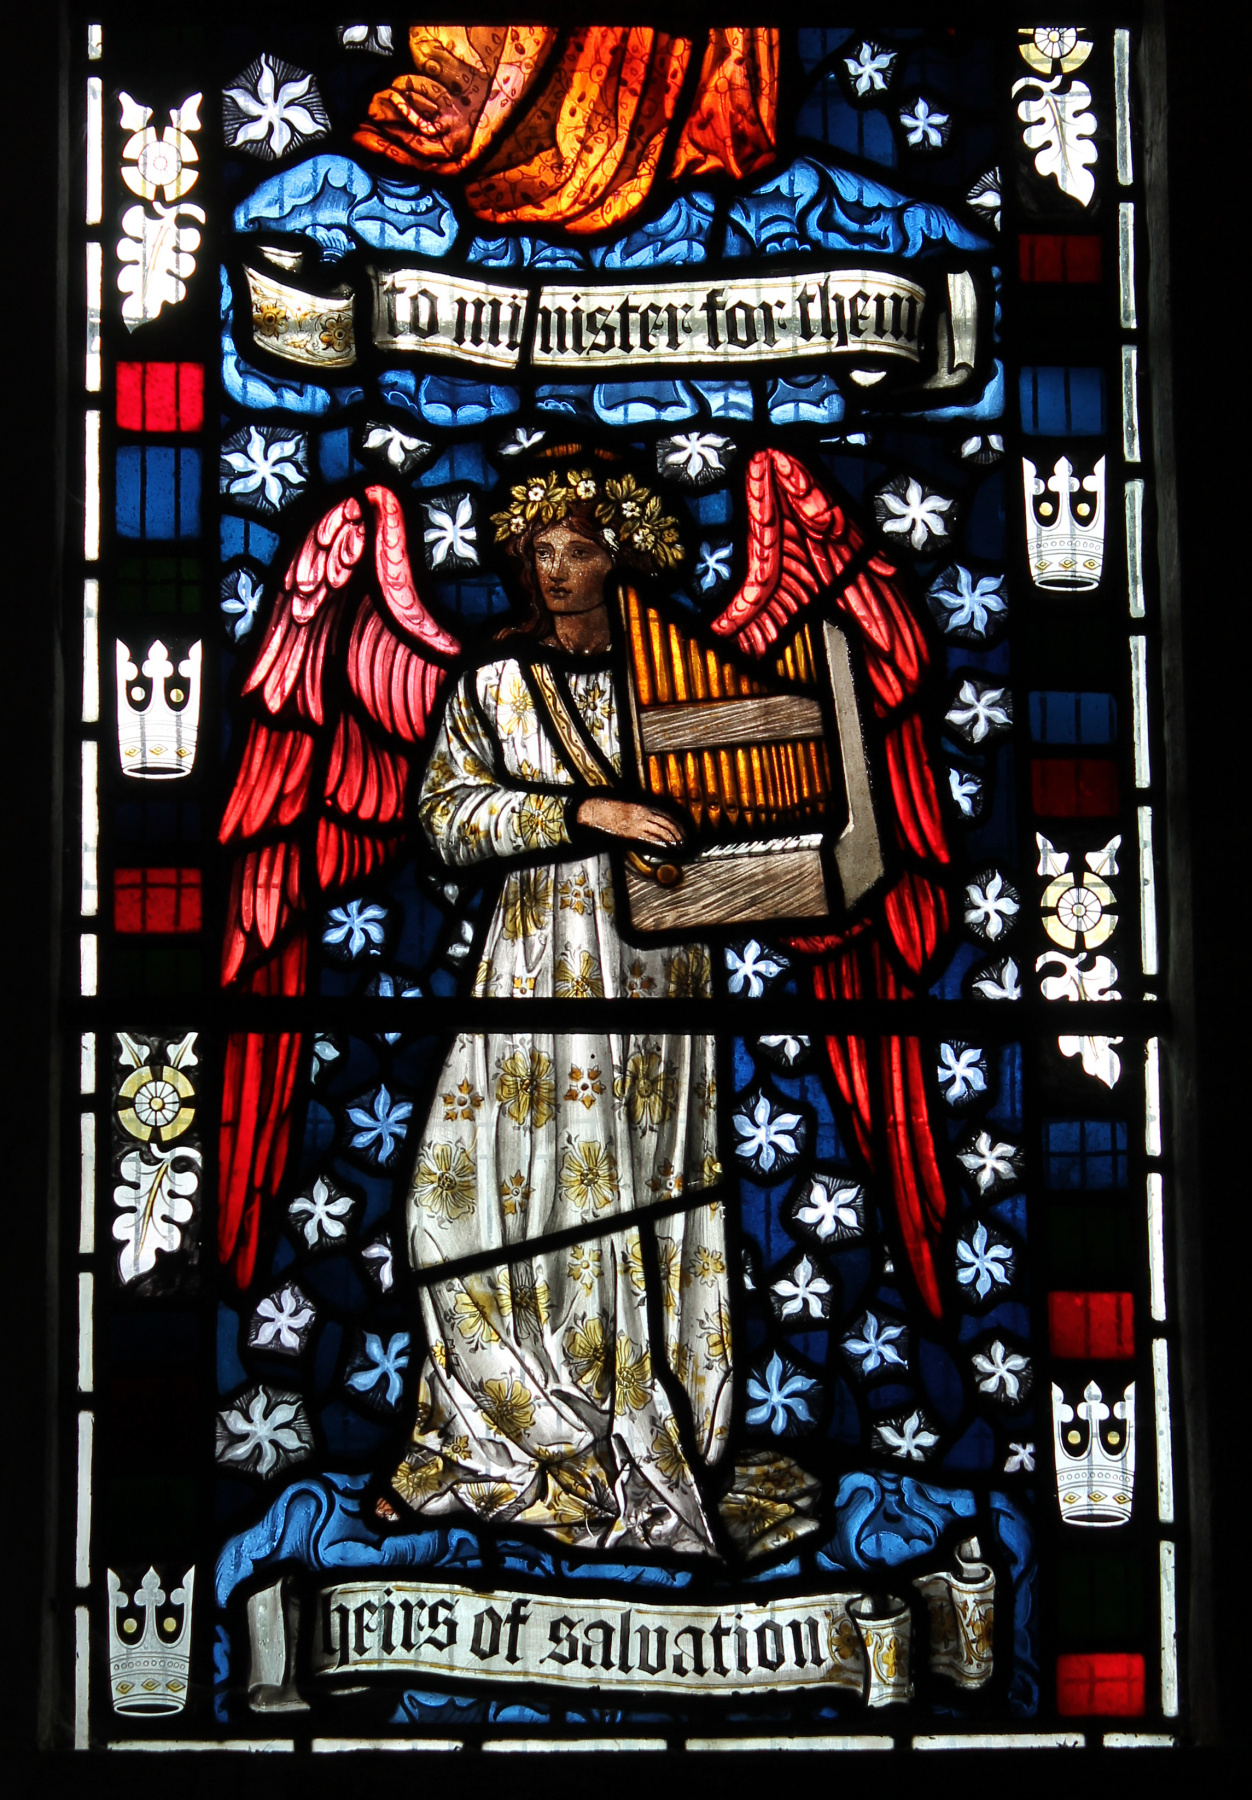 William Morris. Window of the southern passage in the church of St. Peter and Paul, Kattistok, Dorset (co-authorship with Edward Burne-Jones)